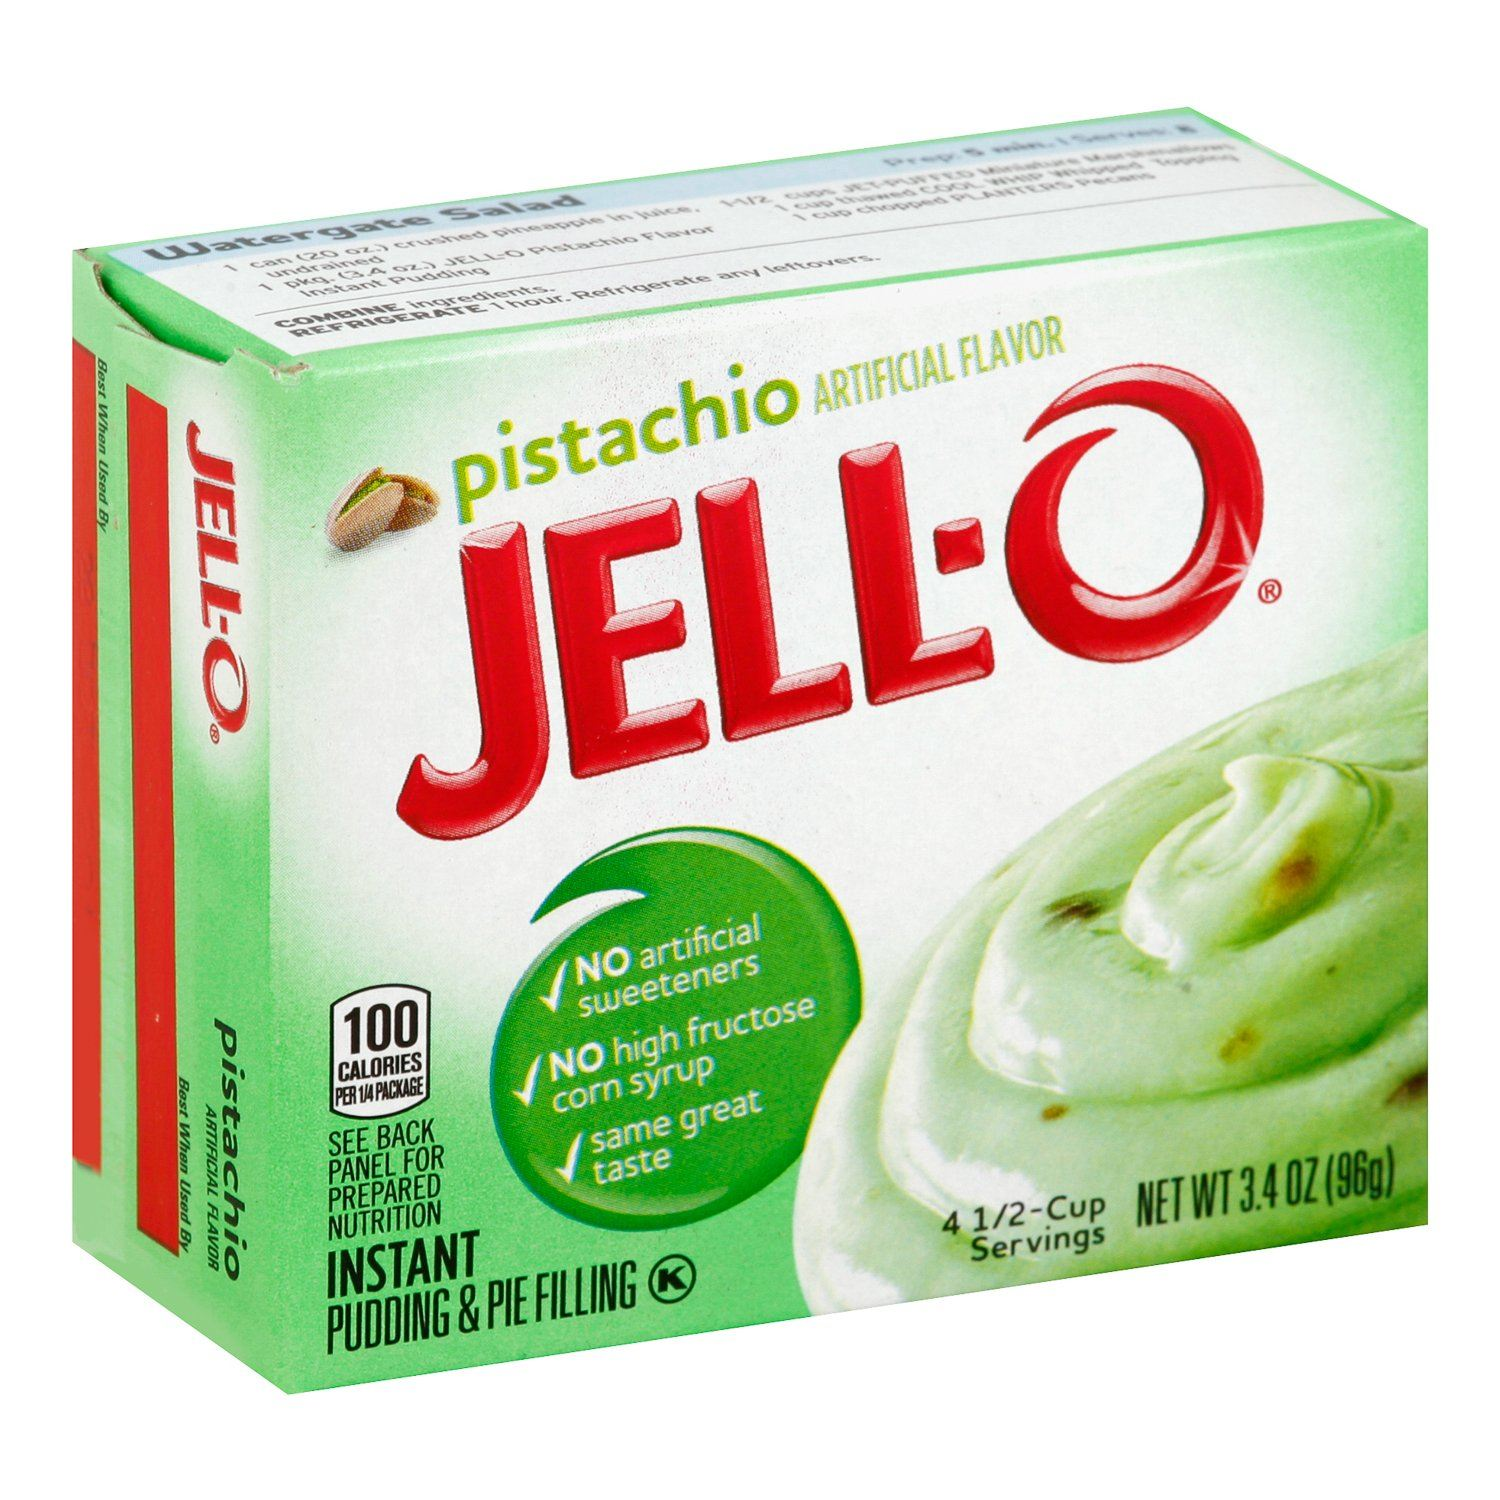 Jell-O Instant Pudding & Pie Filling Mixes Jell-O Pistachio 3.4 Ounce